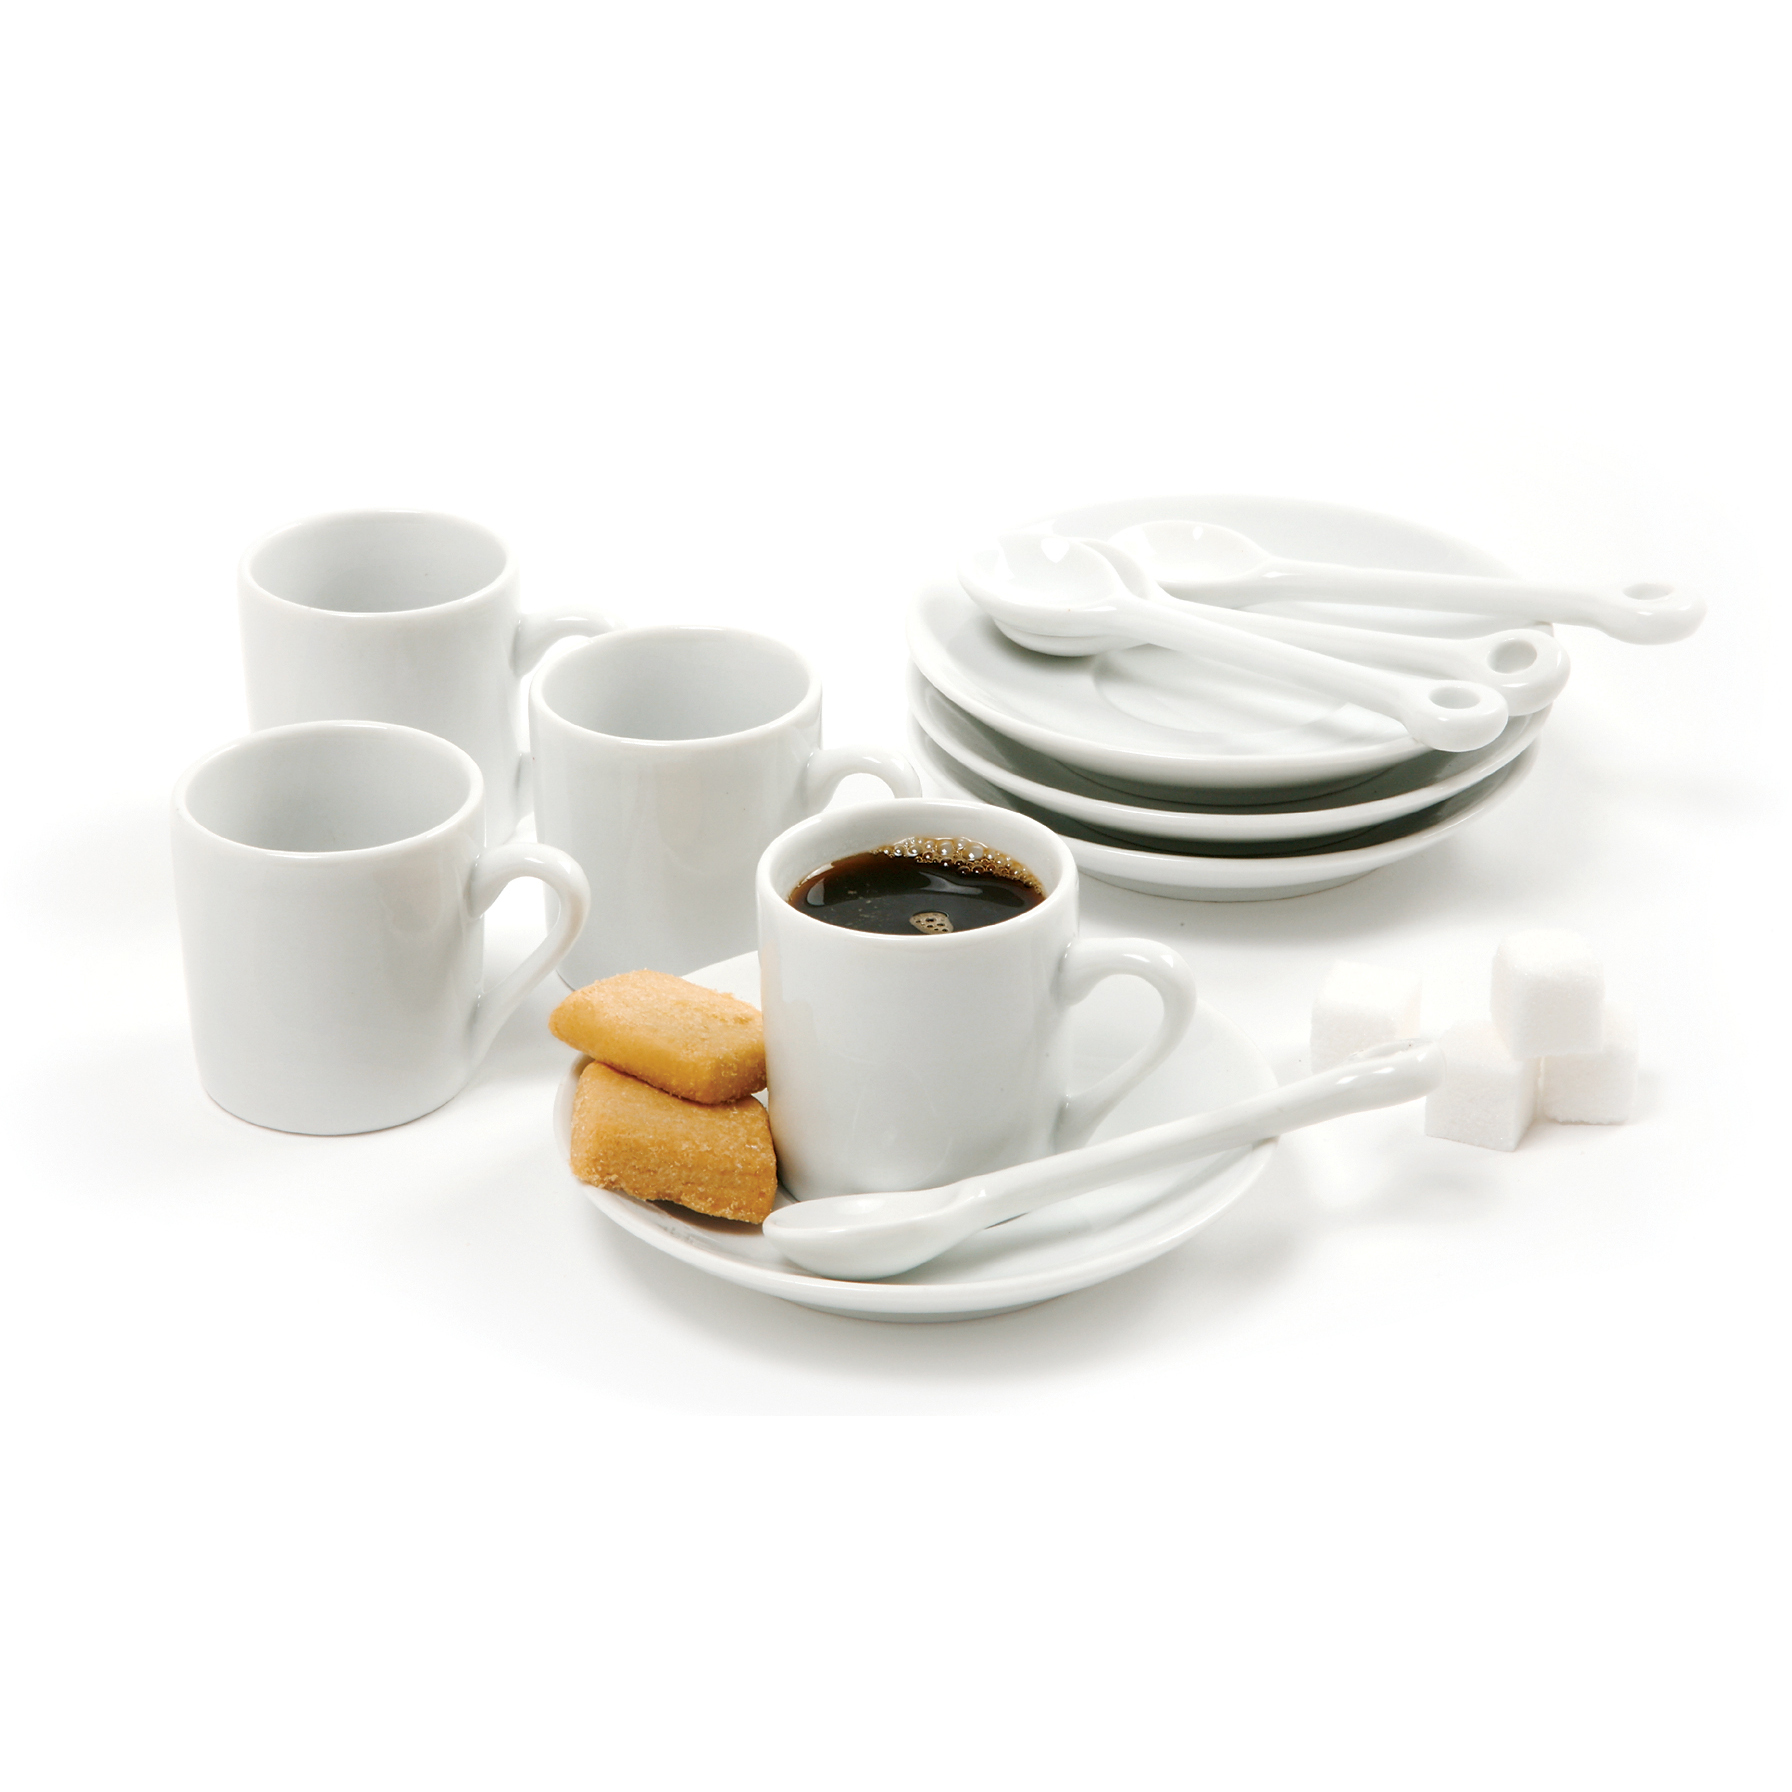 Norpro White Porcelain 12 Piece Demitasse Cup Set